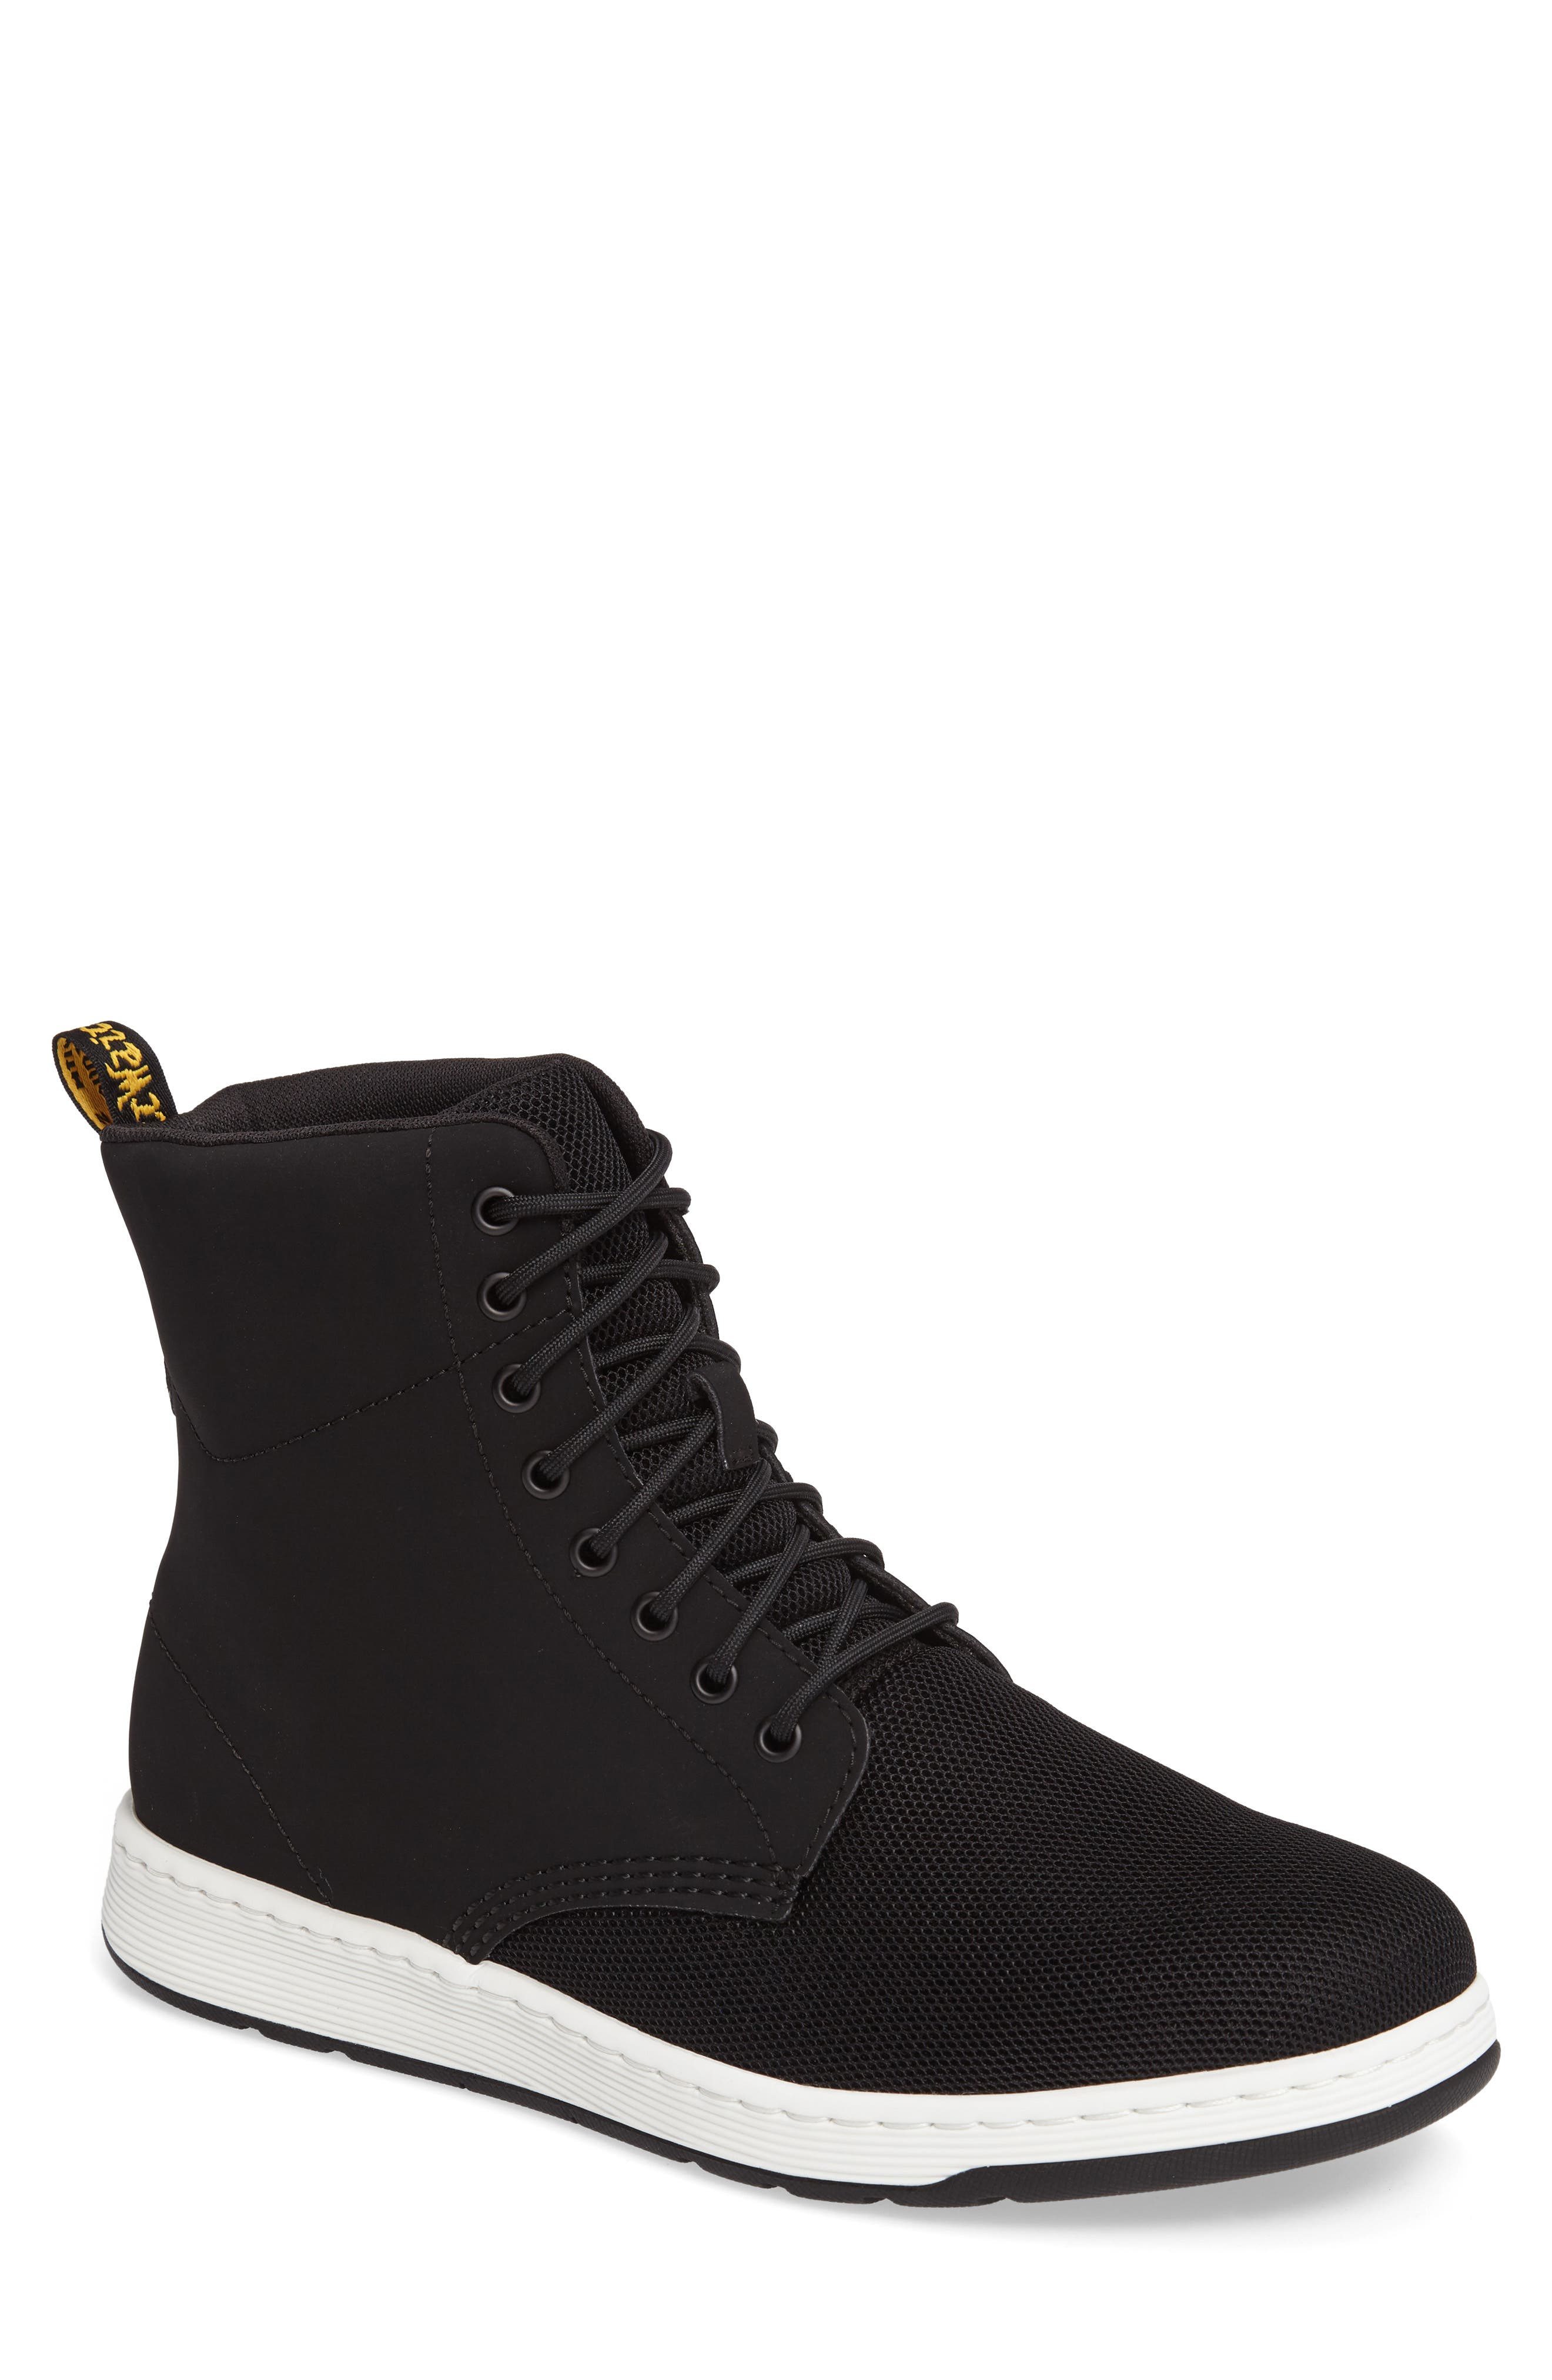 Rigal Plain Toe Boot,                         Main,                         color, Black Leather